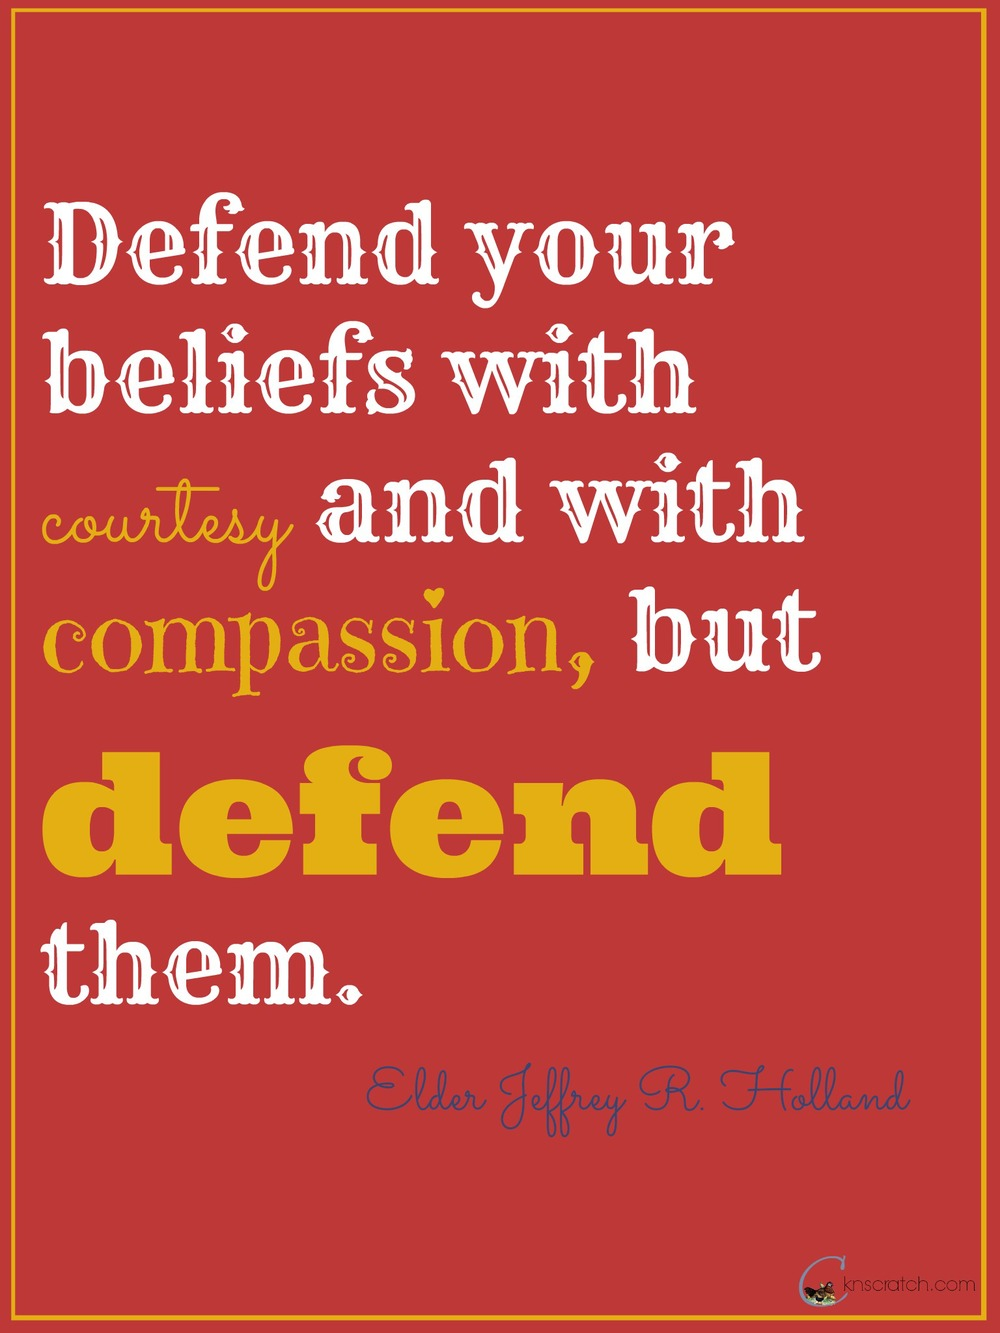 Defend your beliefs